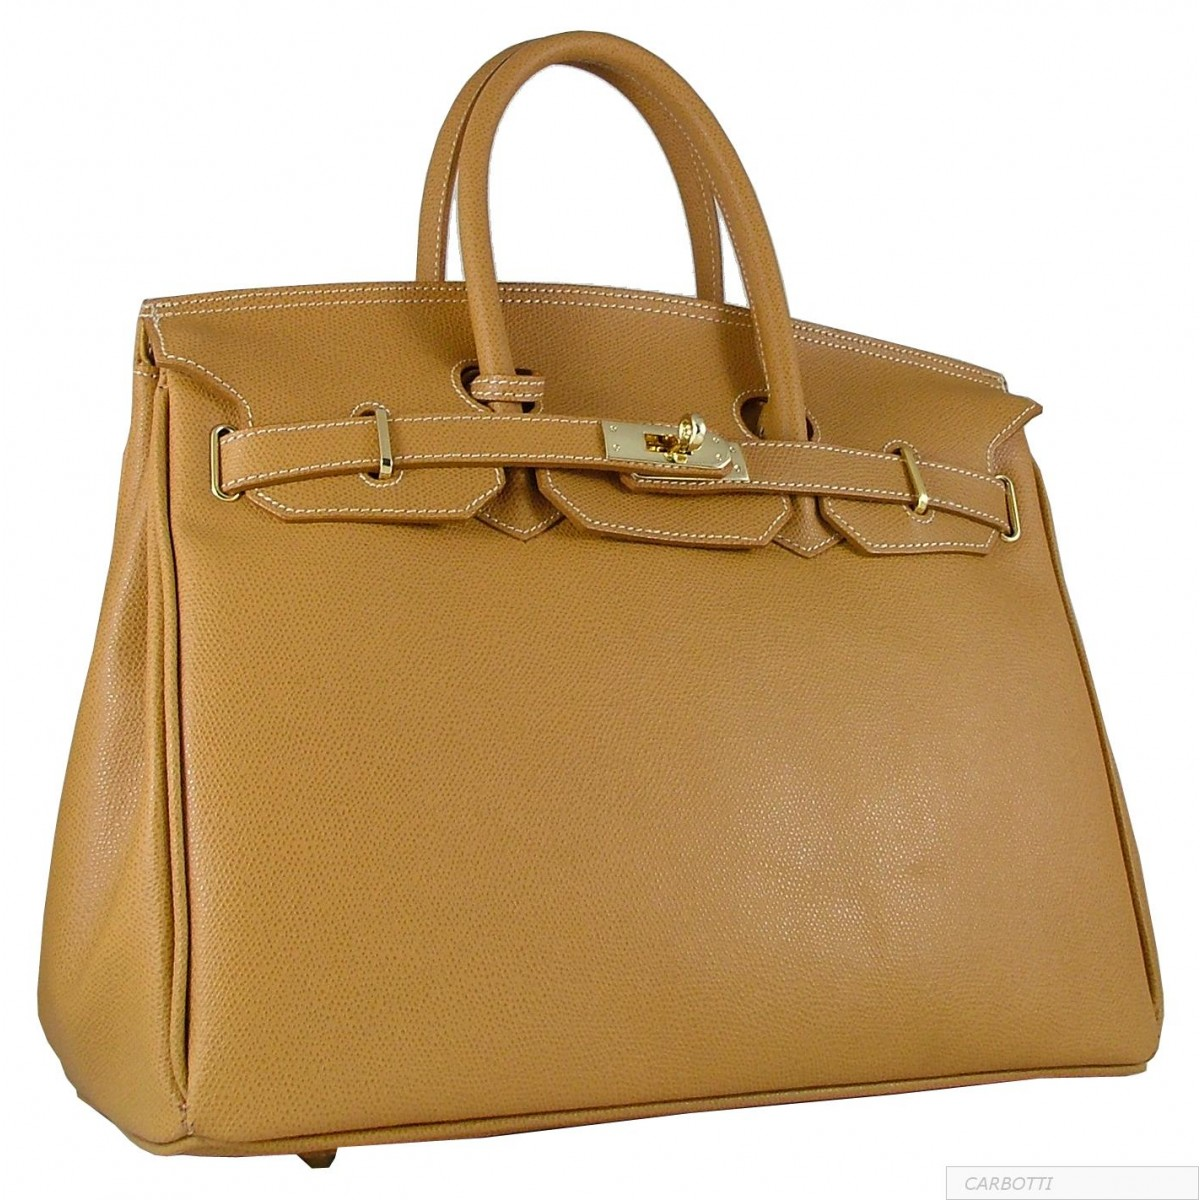 Carbotti - 'Palmellato' calfskin leather - Totes